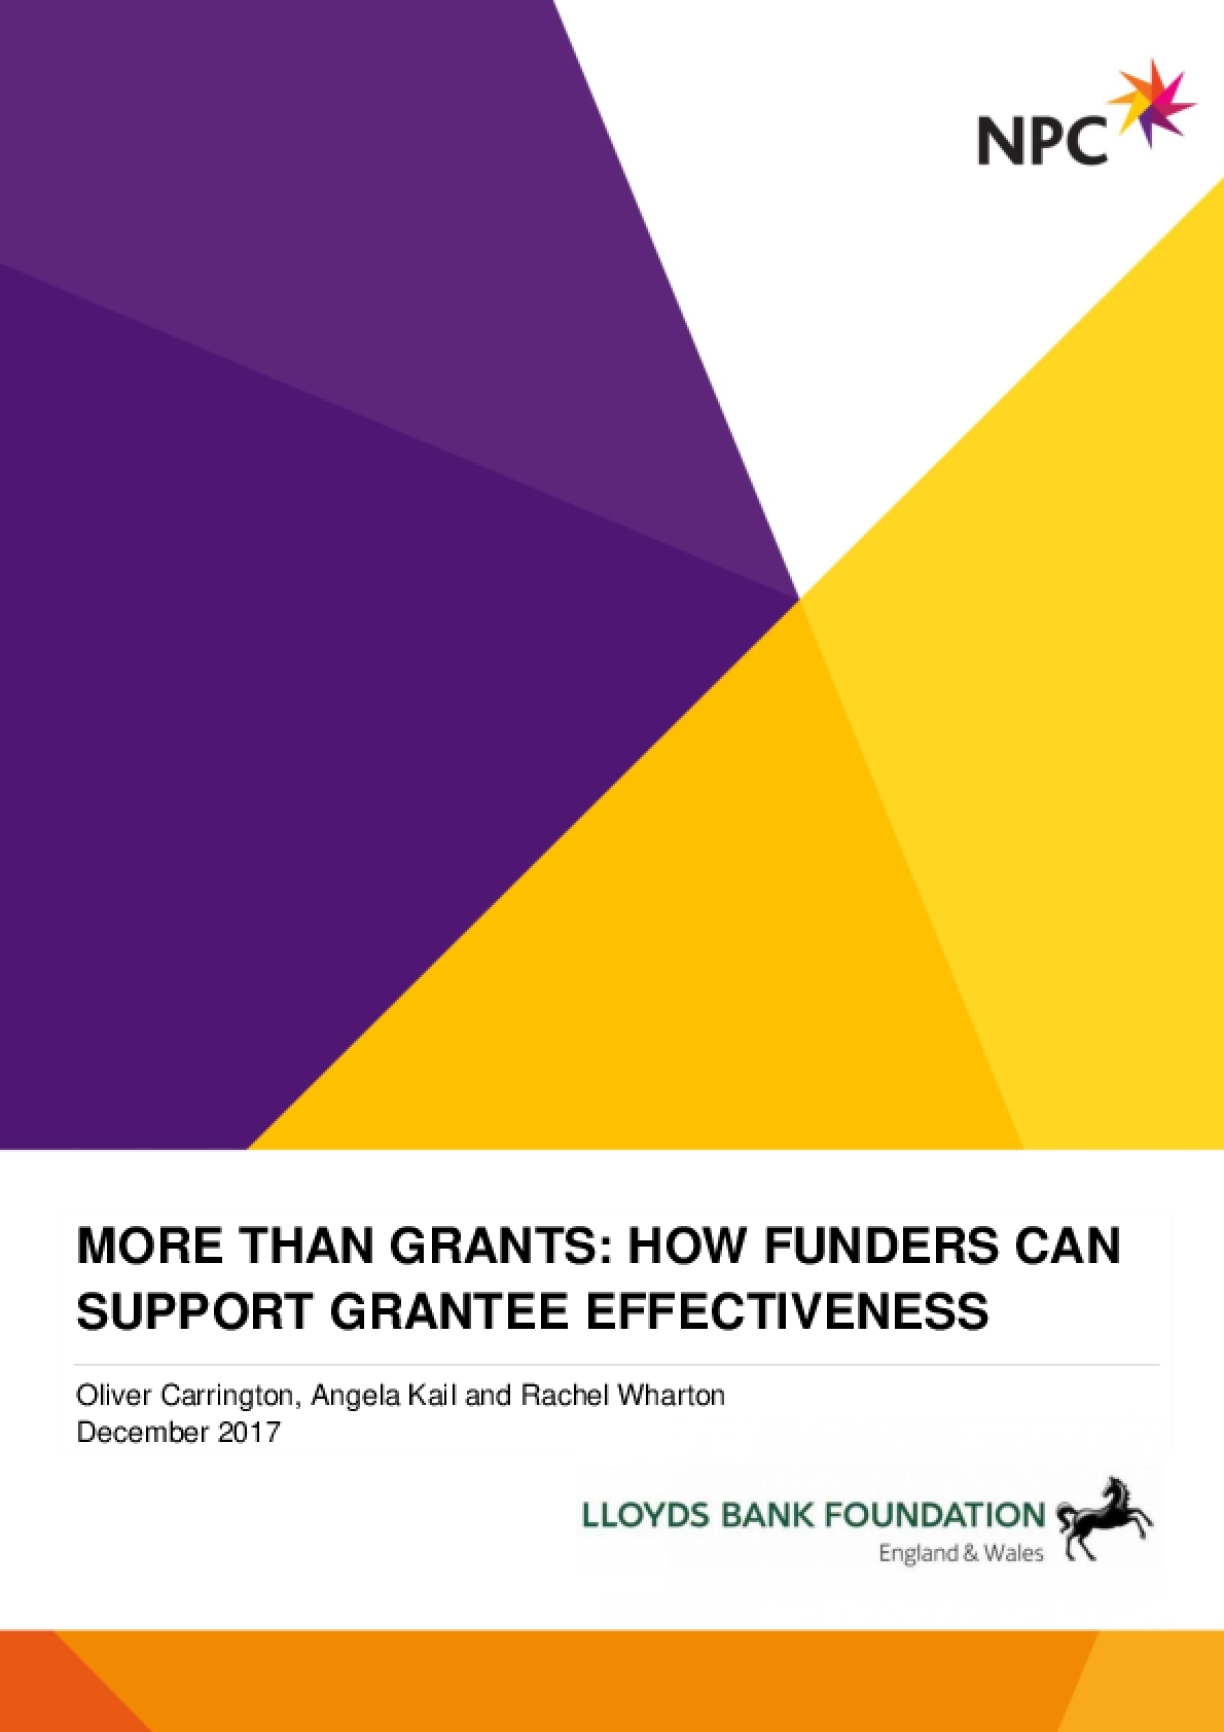 More than Grants: How Funders Can Support Grantee Effectiveness